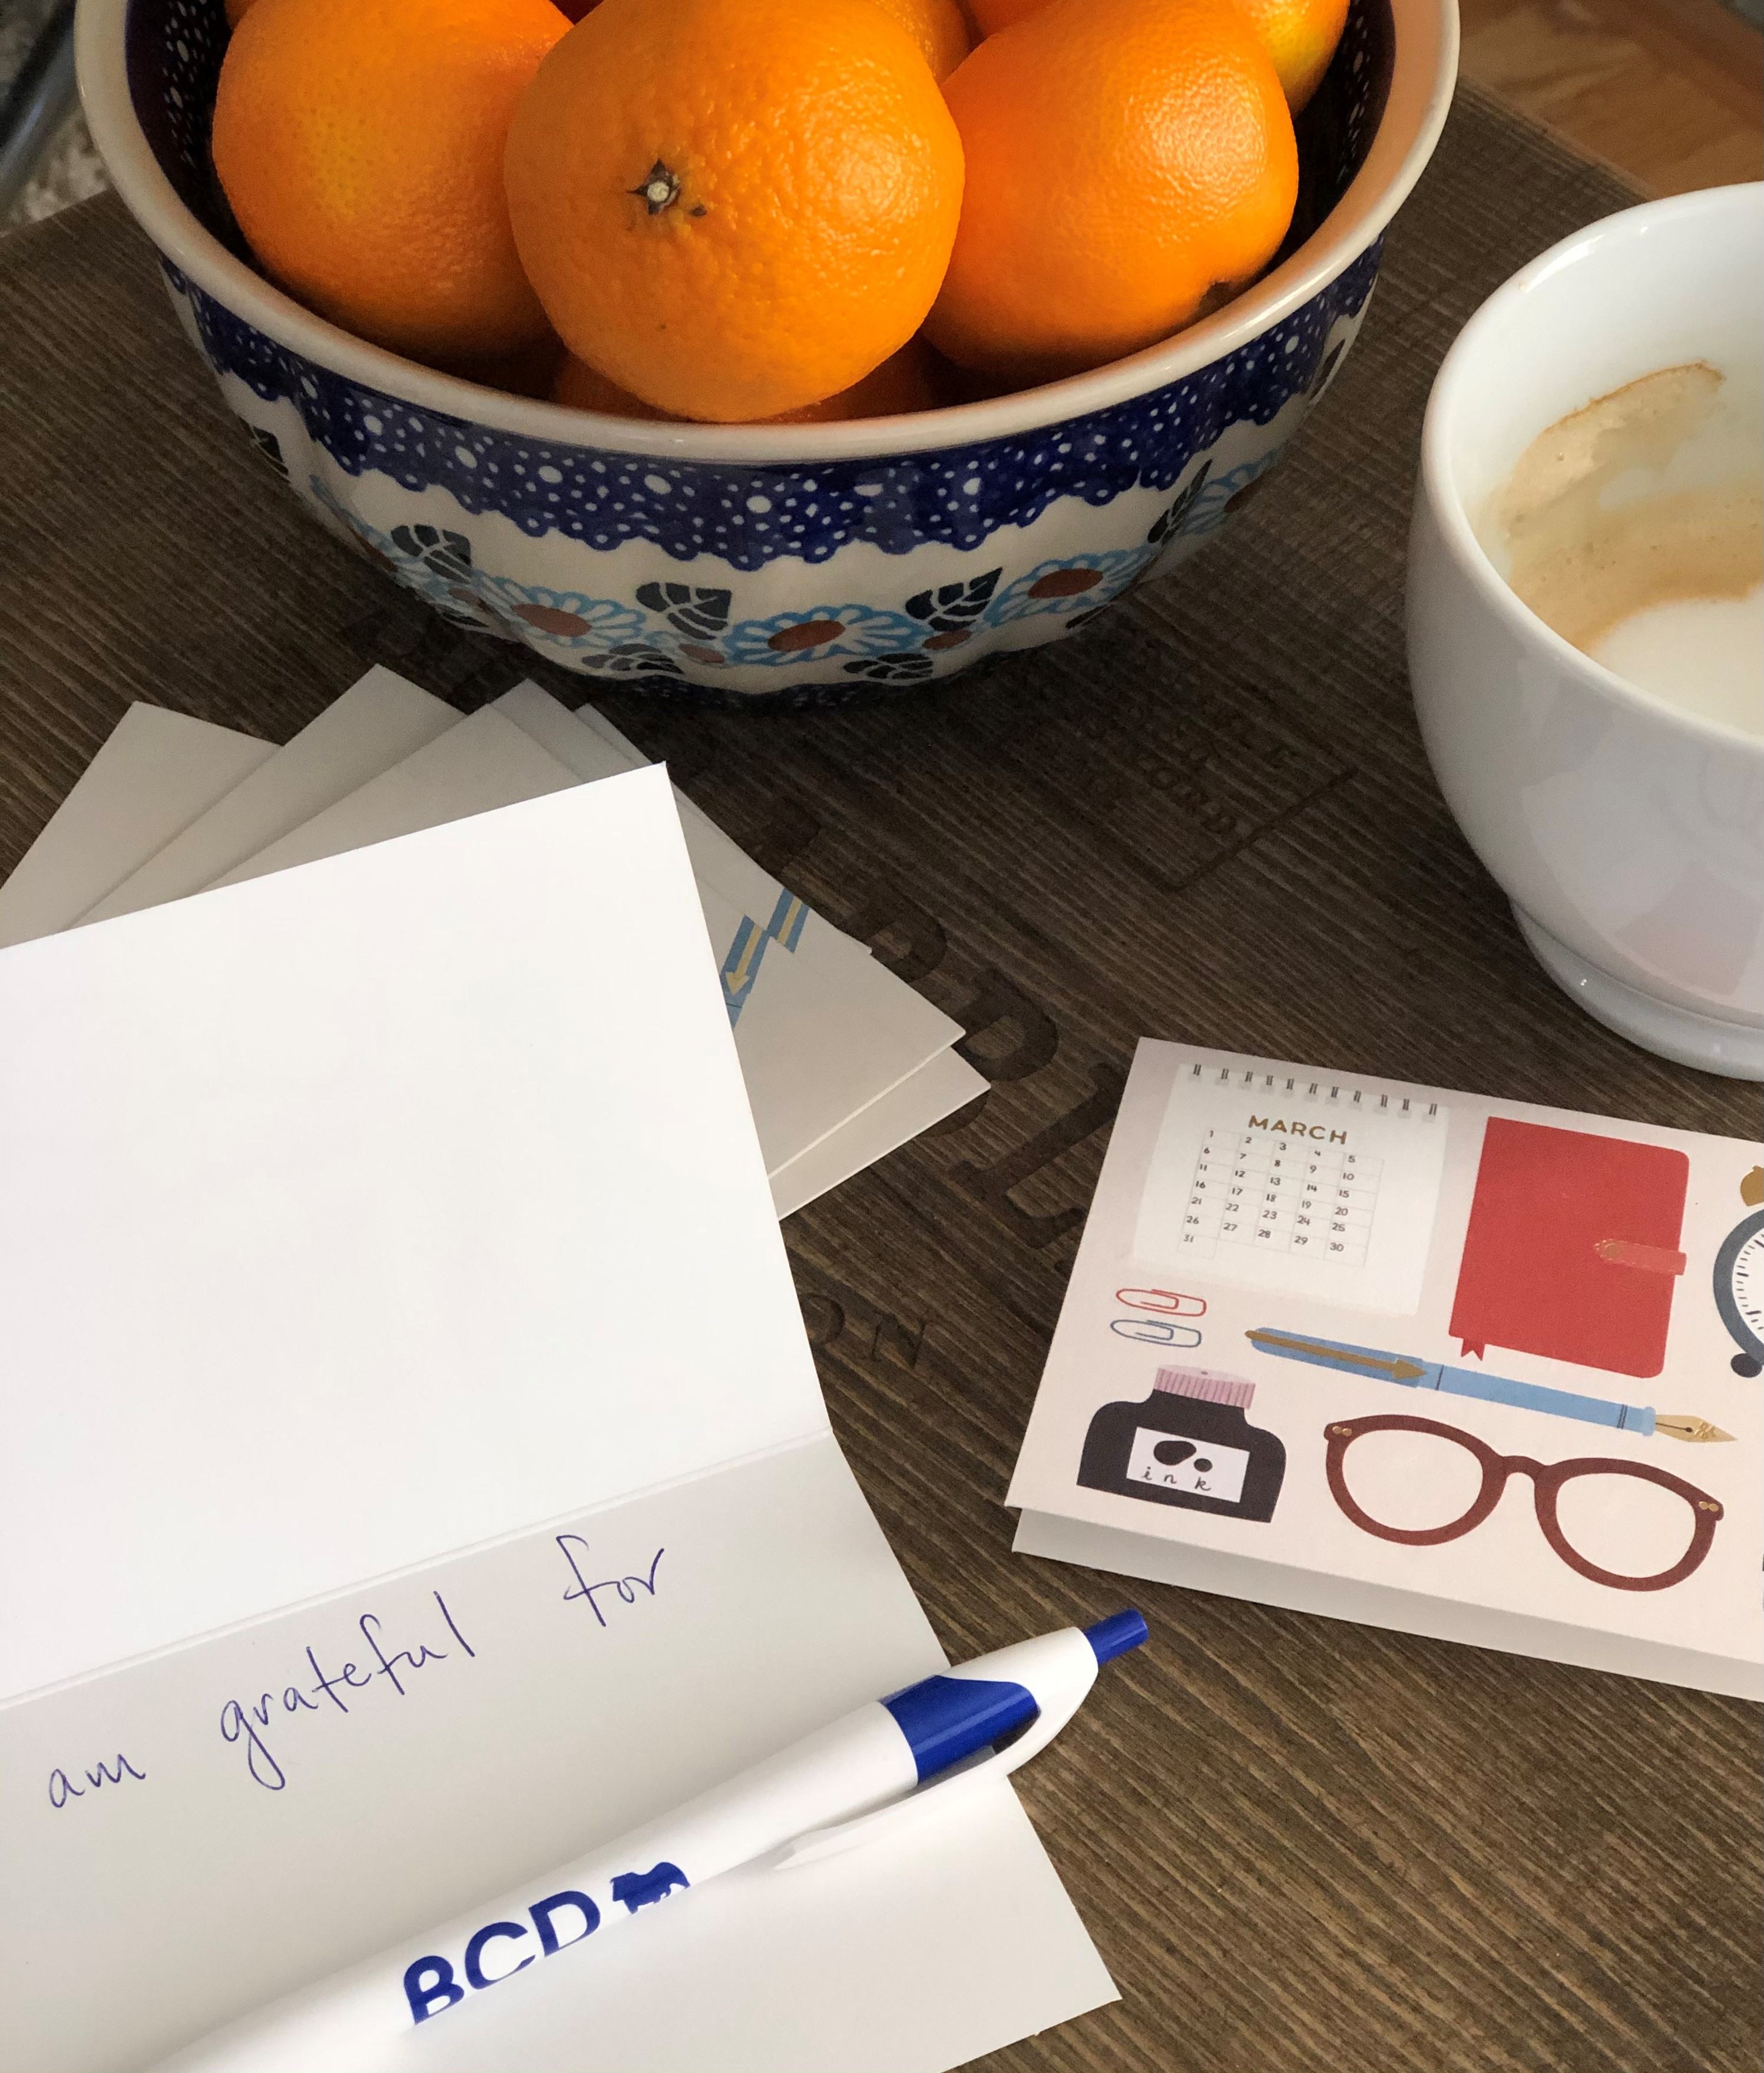 a table top with a bowl of fruit, a half drunk cup of coffee, a calendar, and a handwritten note starting with 'I am grateful for'